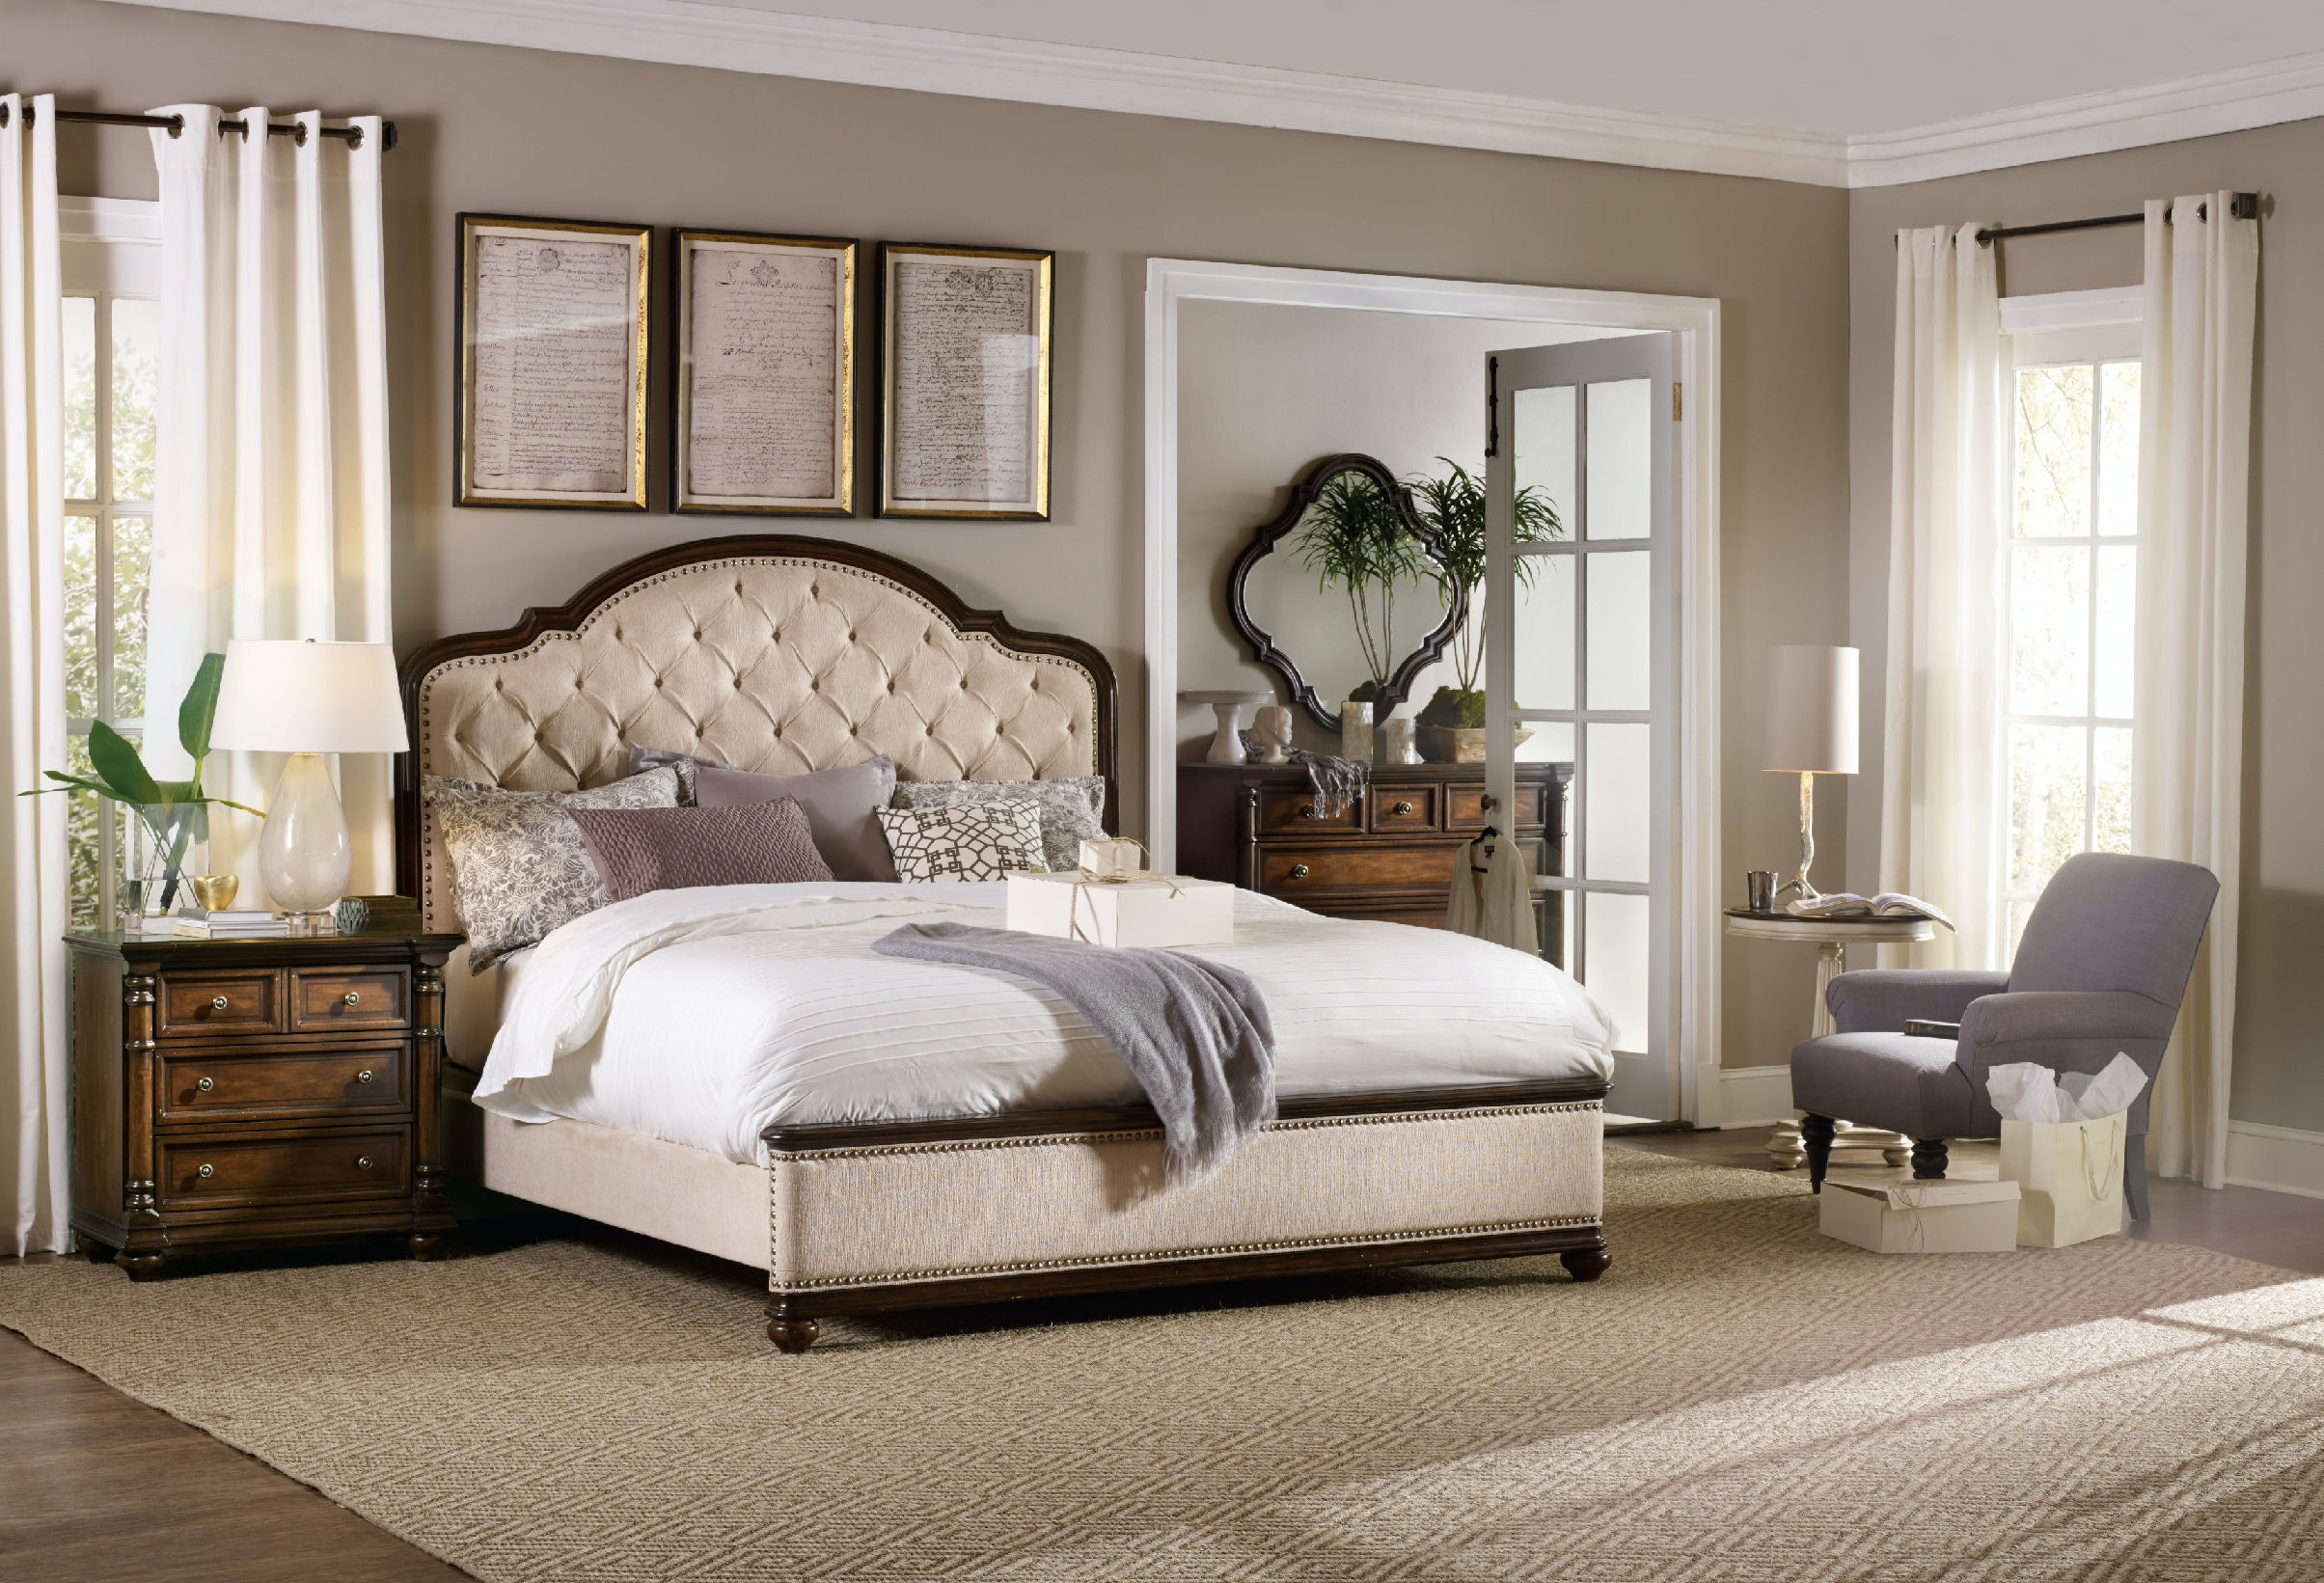 Superbe Hooker Furniture Leesburg Queen Upholstered Bed 5381 90850